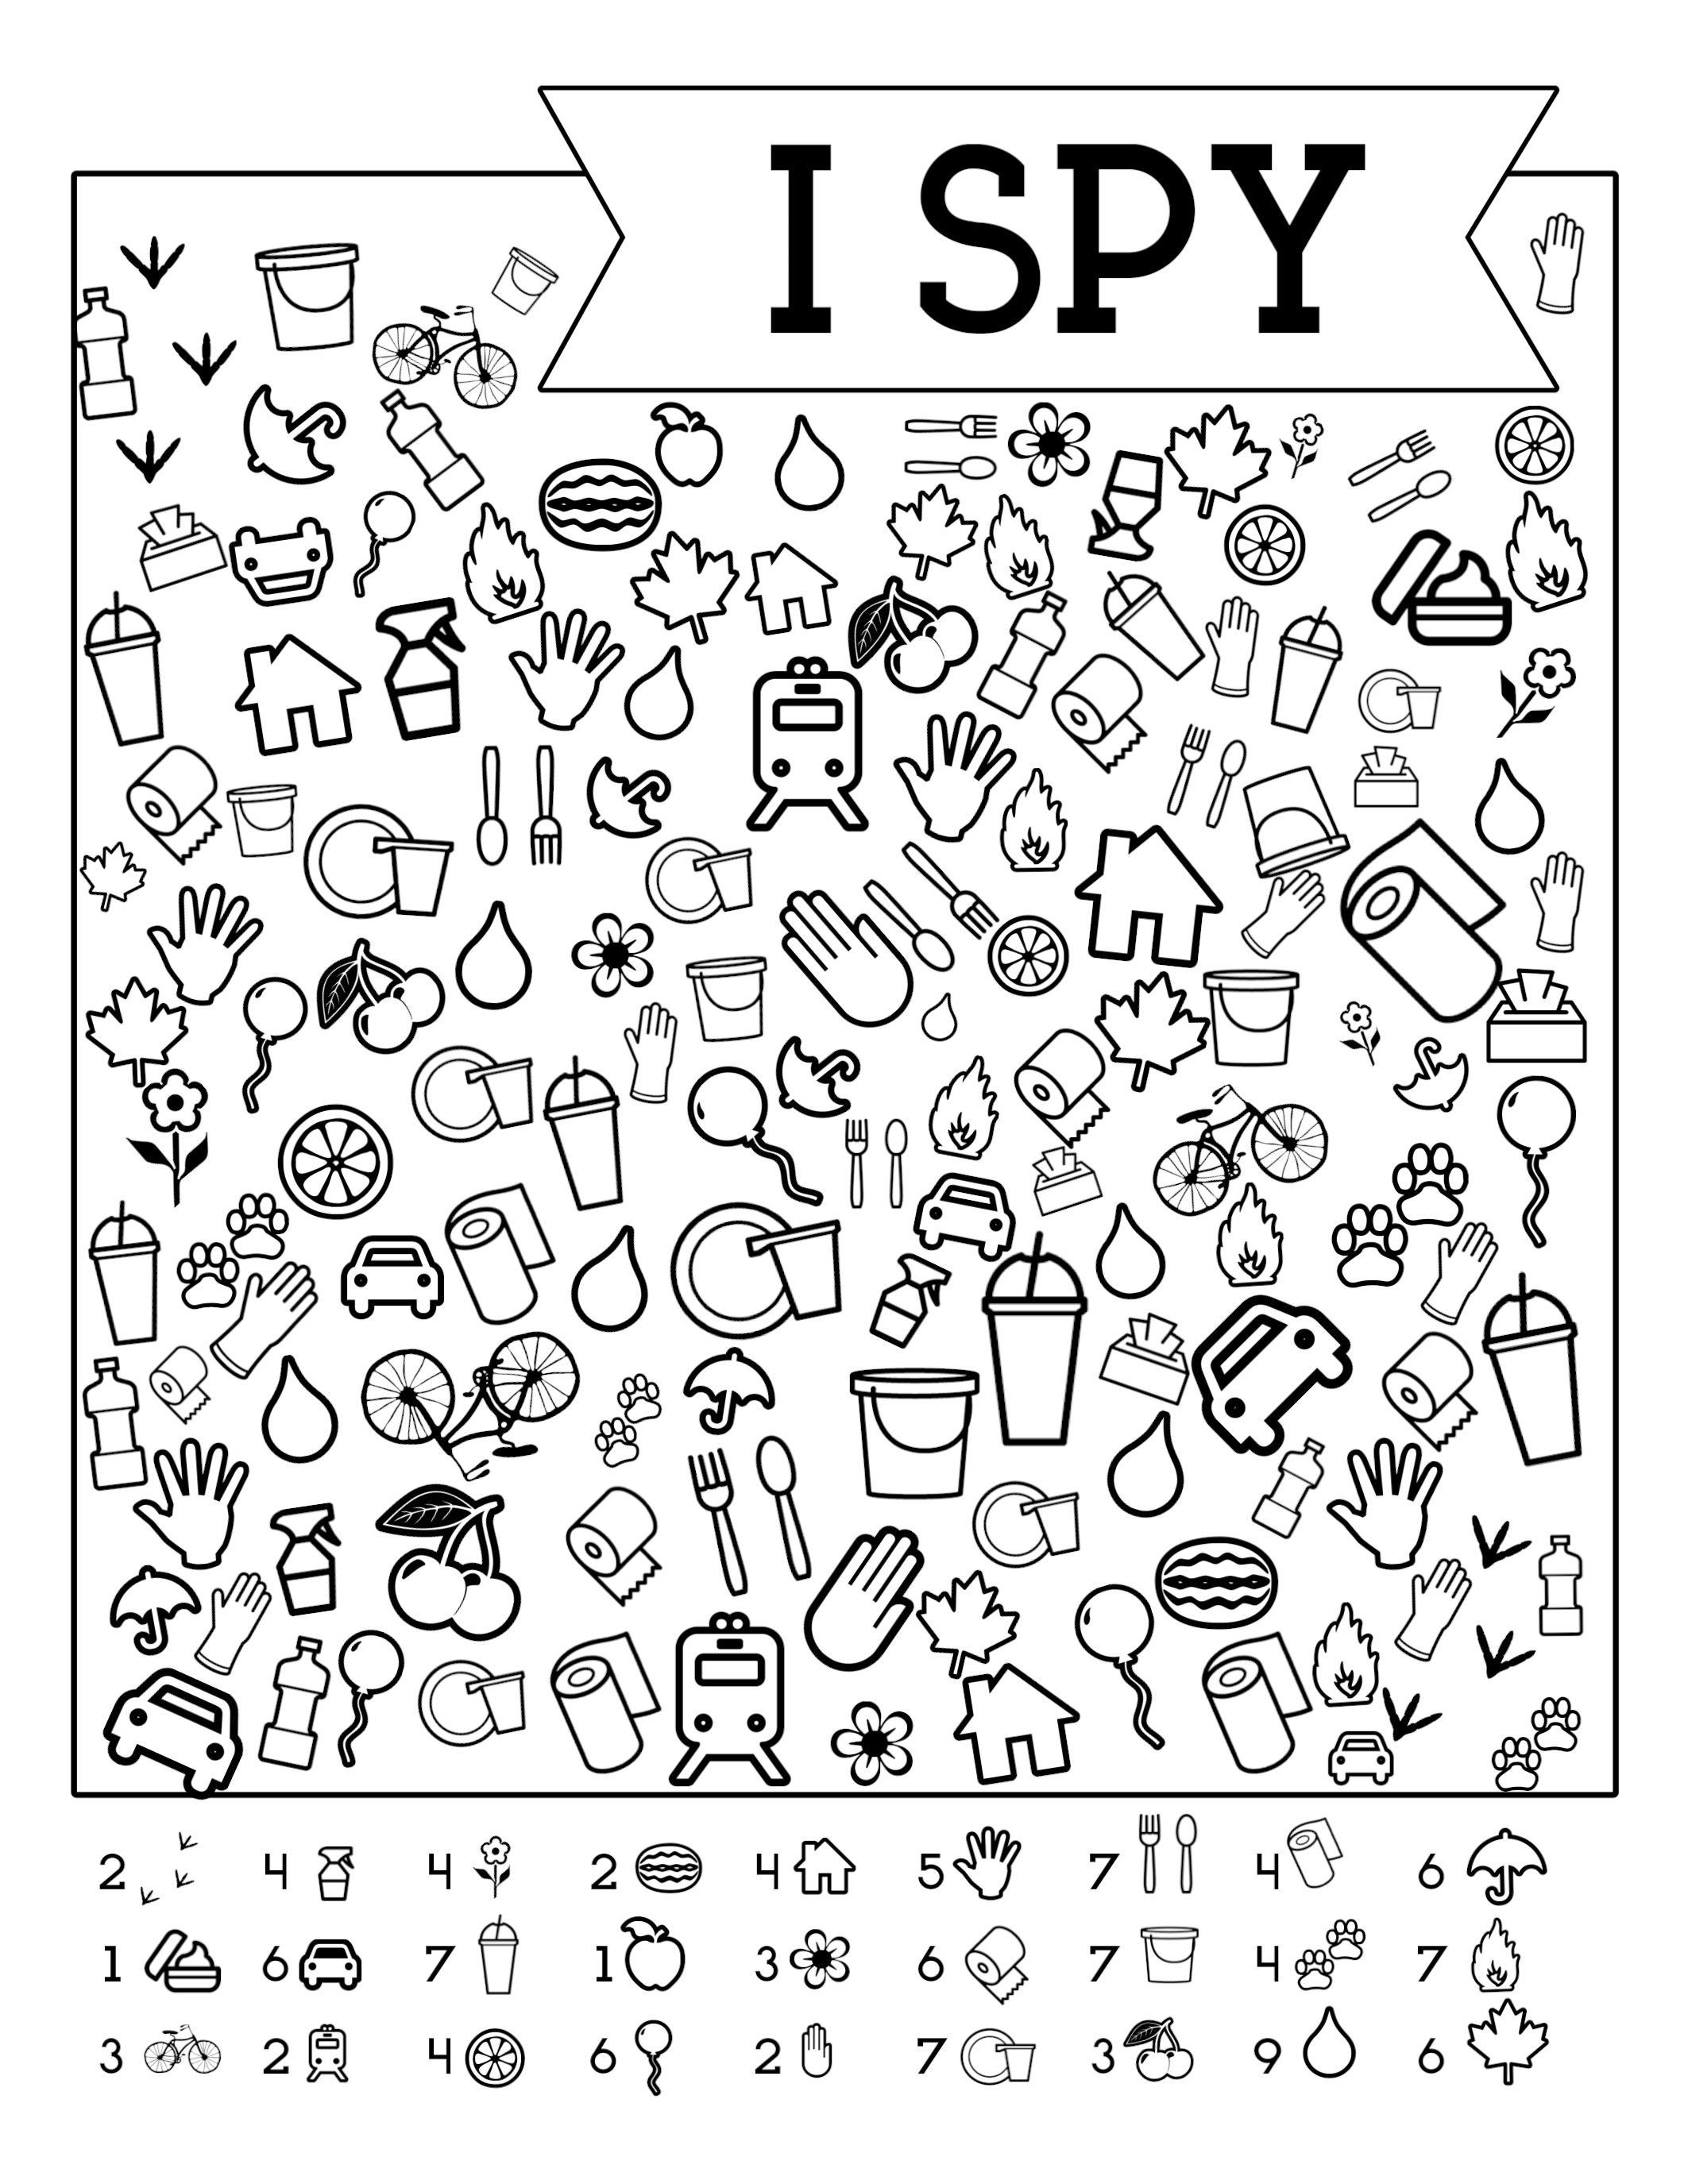 I-Spy-Free-Printable-Kids-Game | Spy School Camp | Road Trip Games - I Spy Puzzles Printable